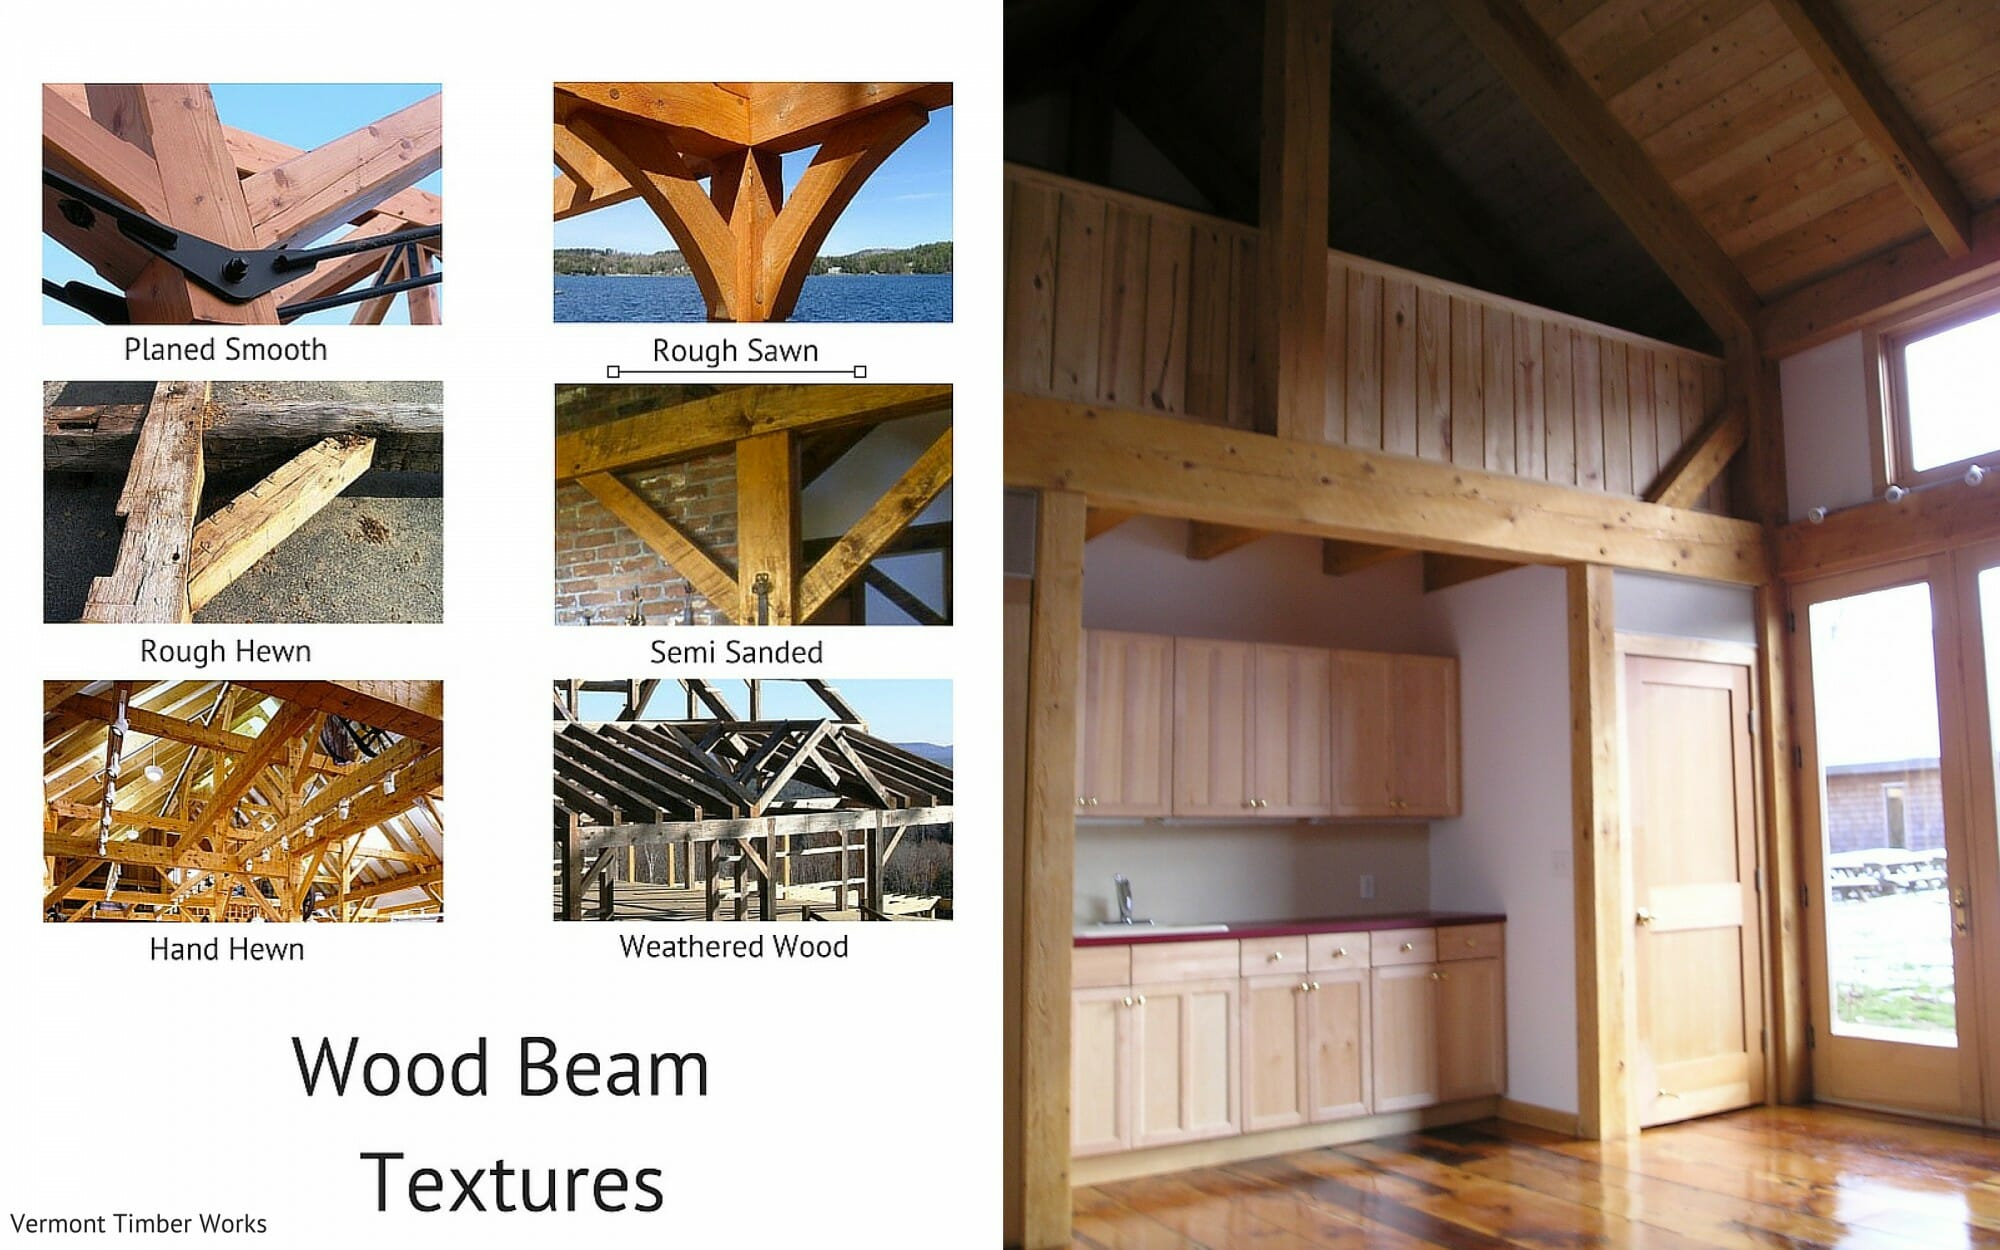 Wood Beam Textures Rough Sawn 2